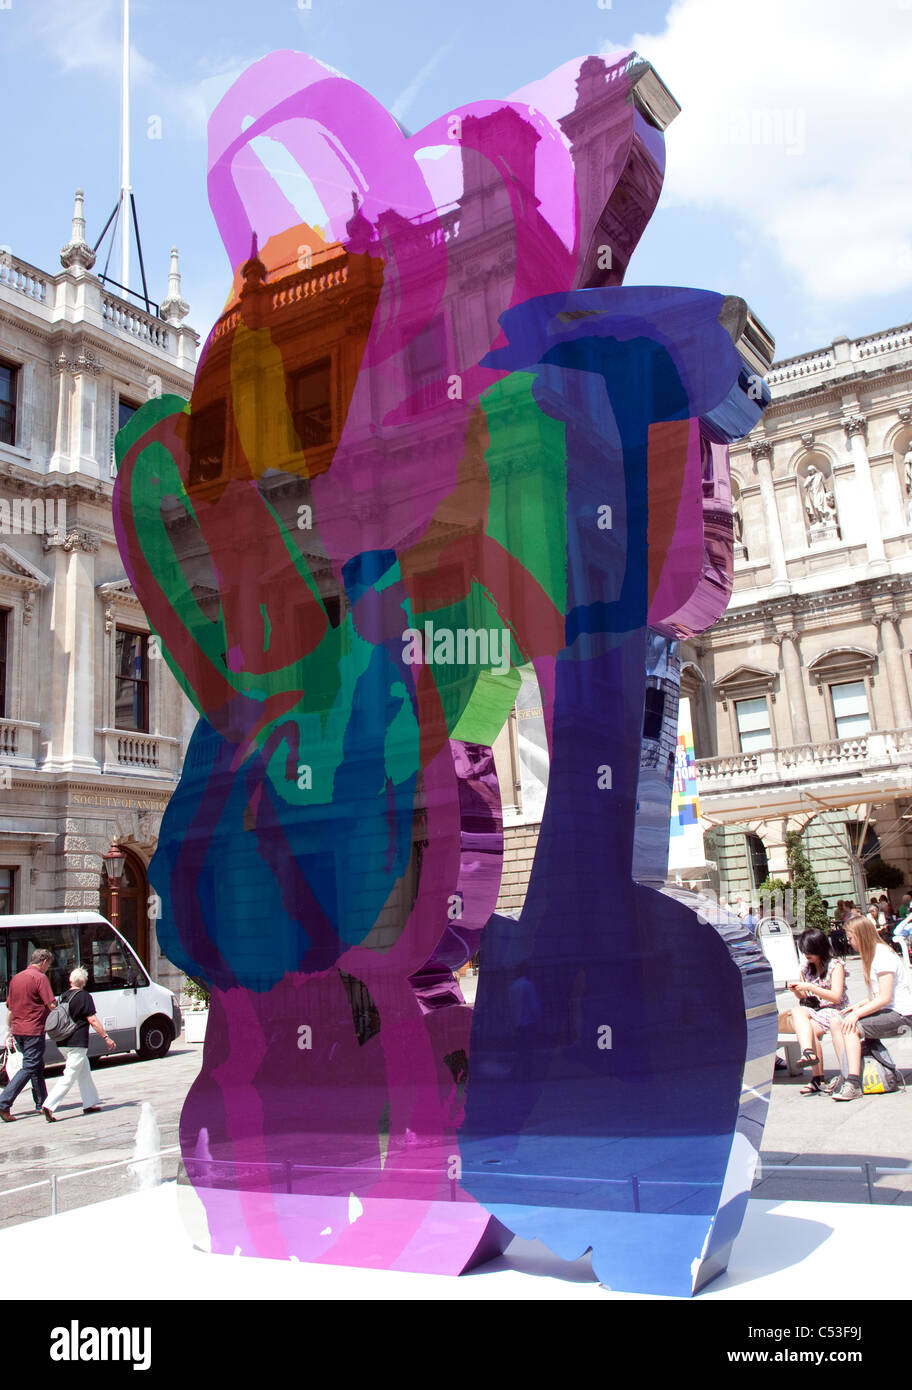 Coloring book by jeff koons - Coloring Book Sculpture By Jeff Koons At Royal Academy Of Arts London